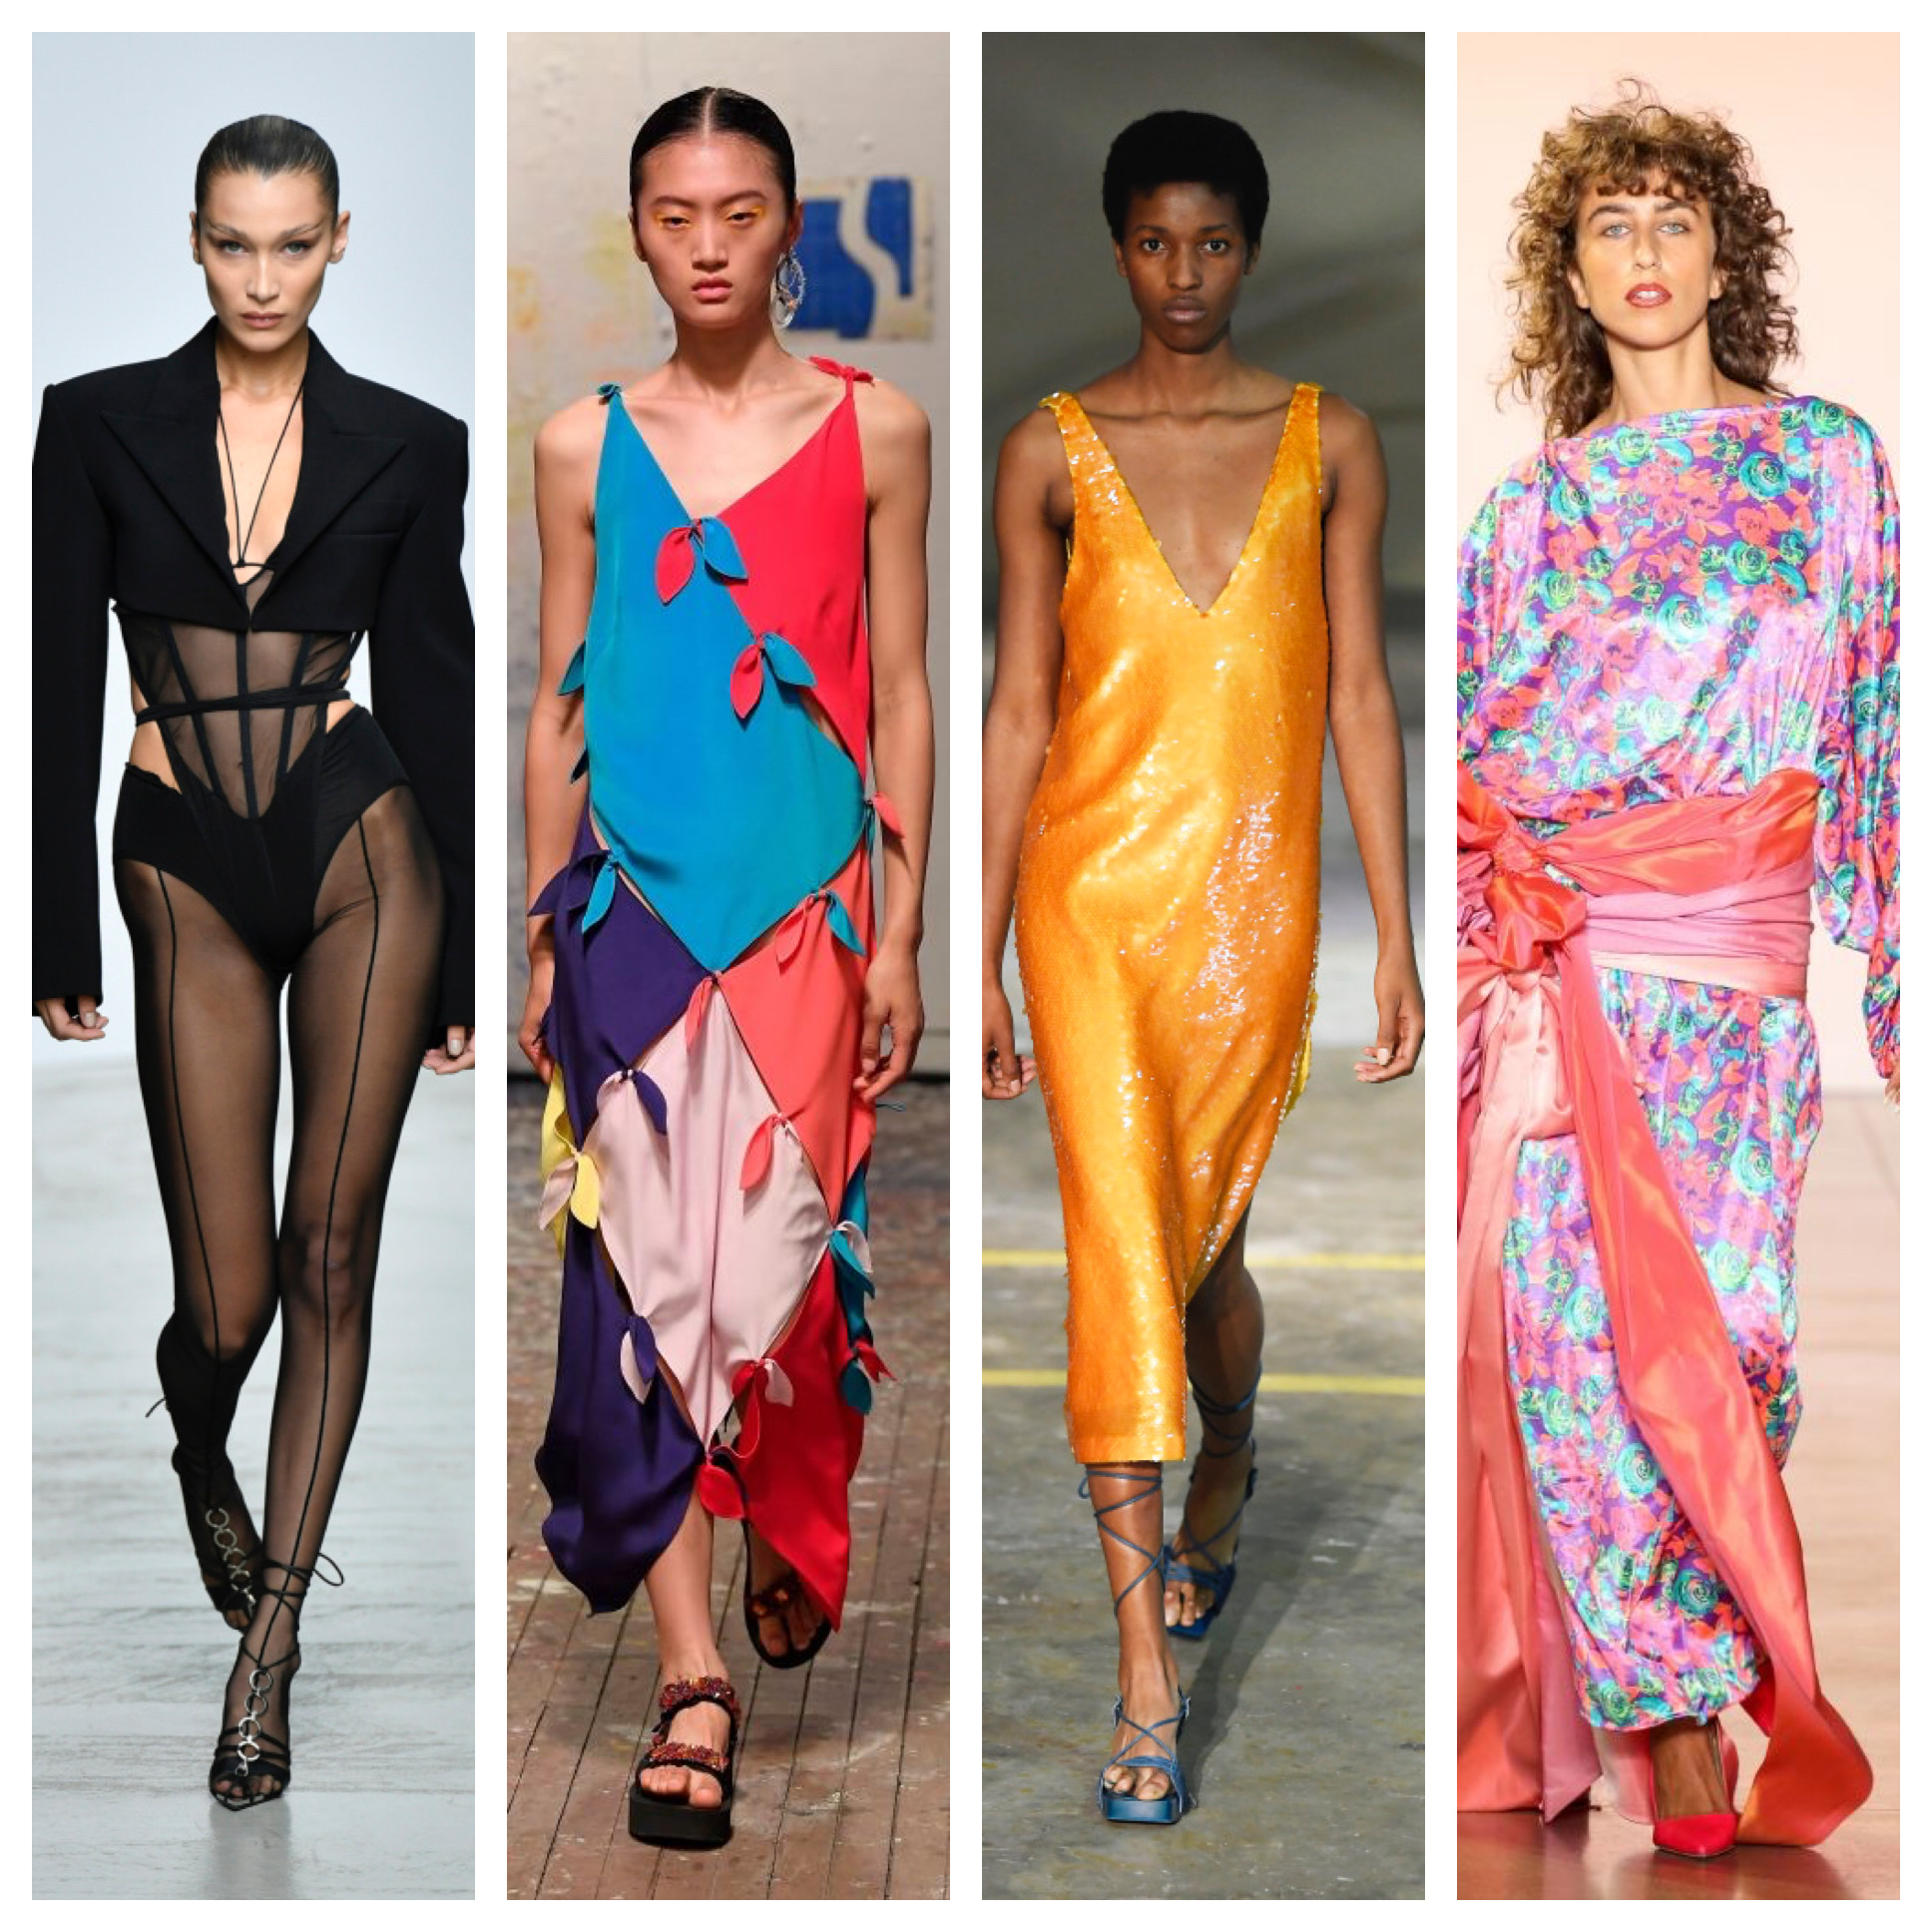 The 7 Biggest Spring 7 Fashion Trends From the Runway – WWD